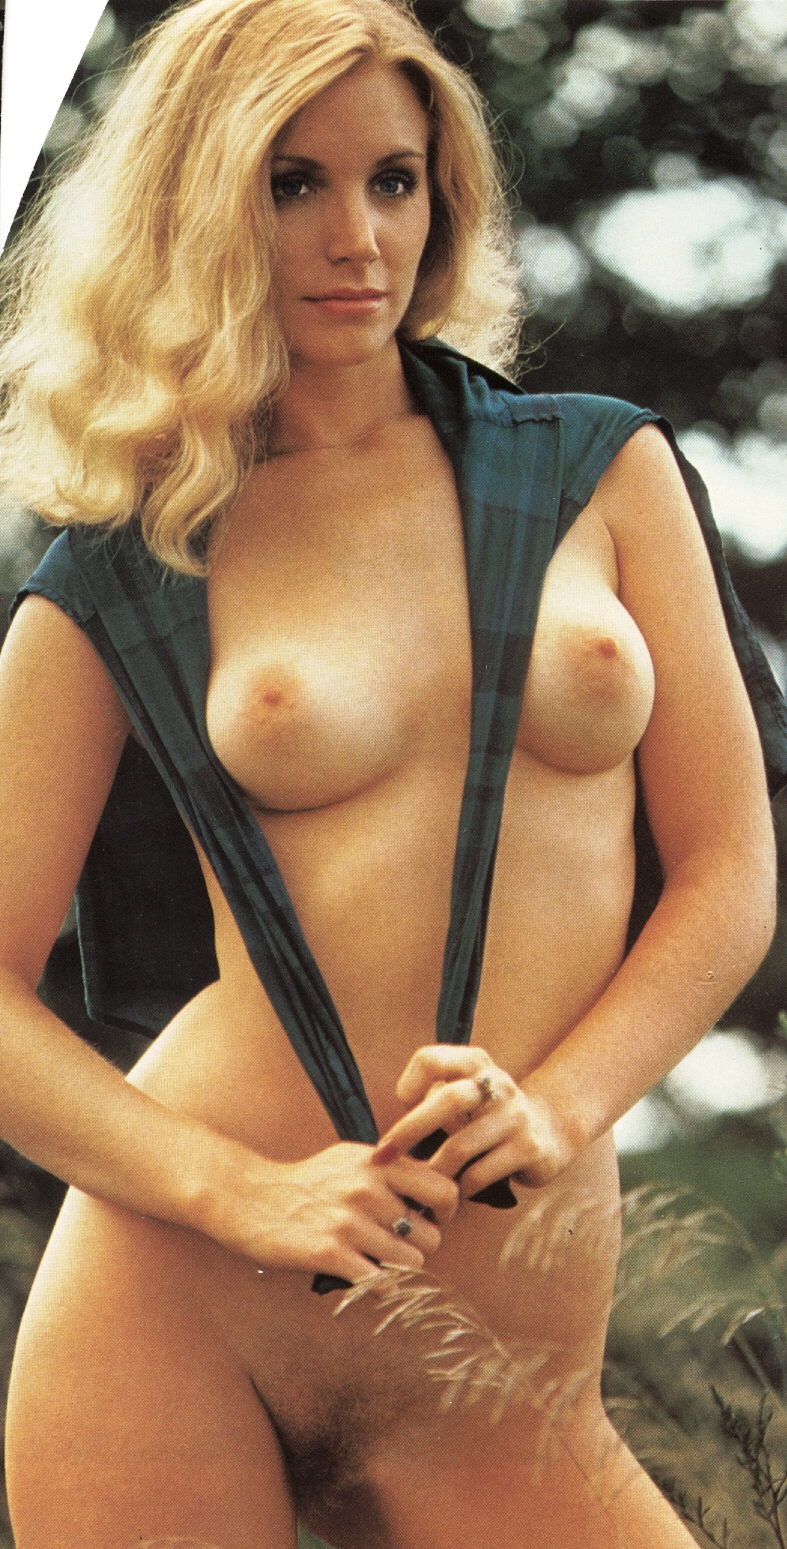 Shannon tweed nue movie